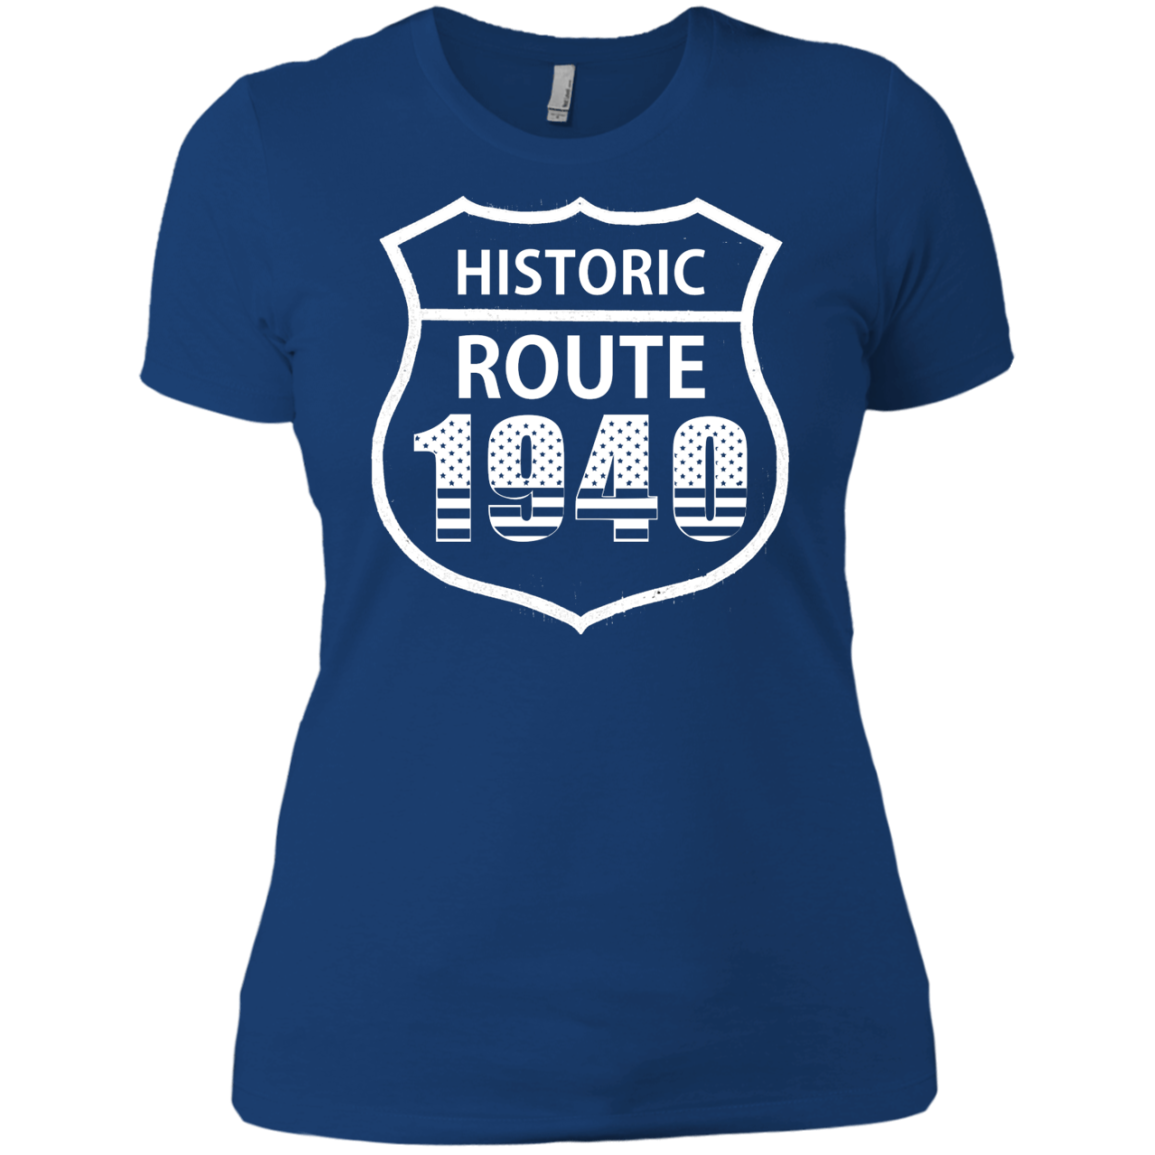 1940 Historic Route The American Way T-Shirts Funny Sports Shirt Football Tee - The Sun Cat